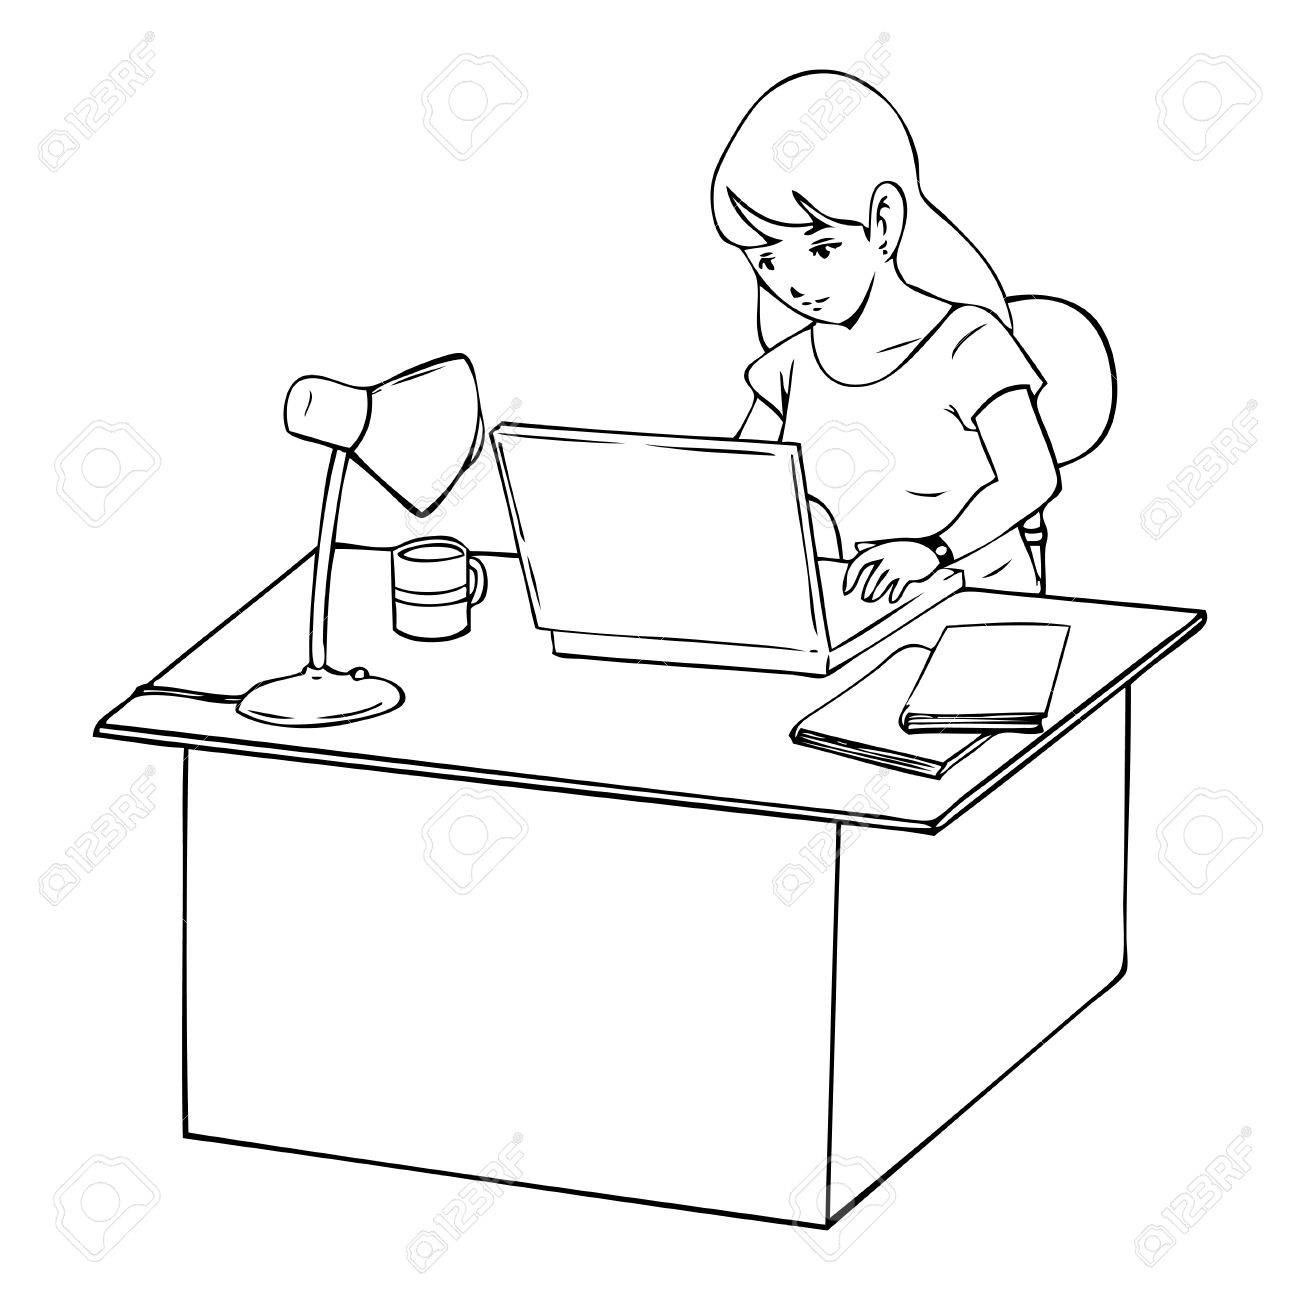 1300x1300 Line Art Illustration Of A Woman Working On Laptop Computer